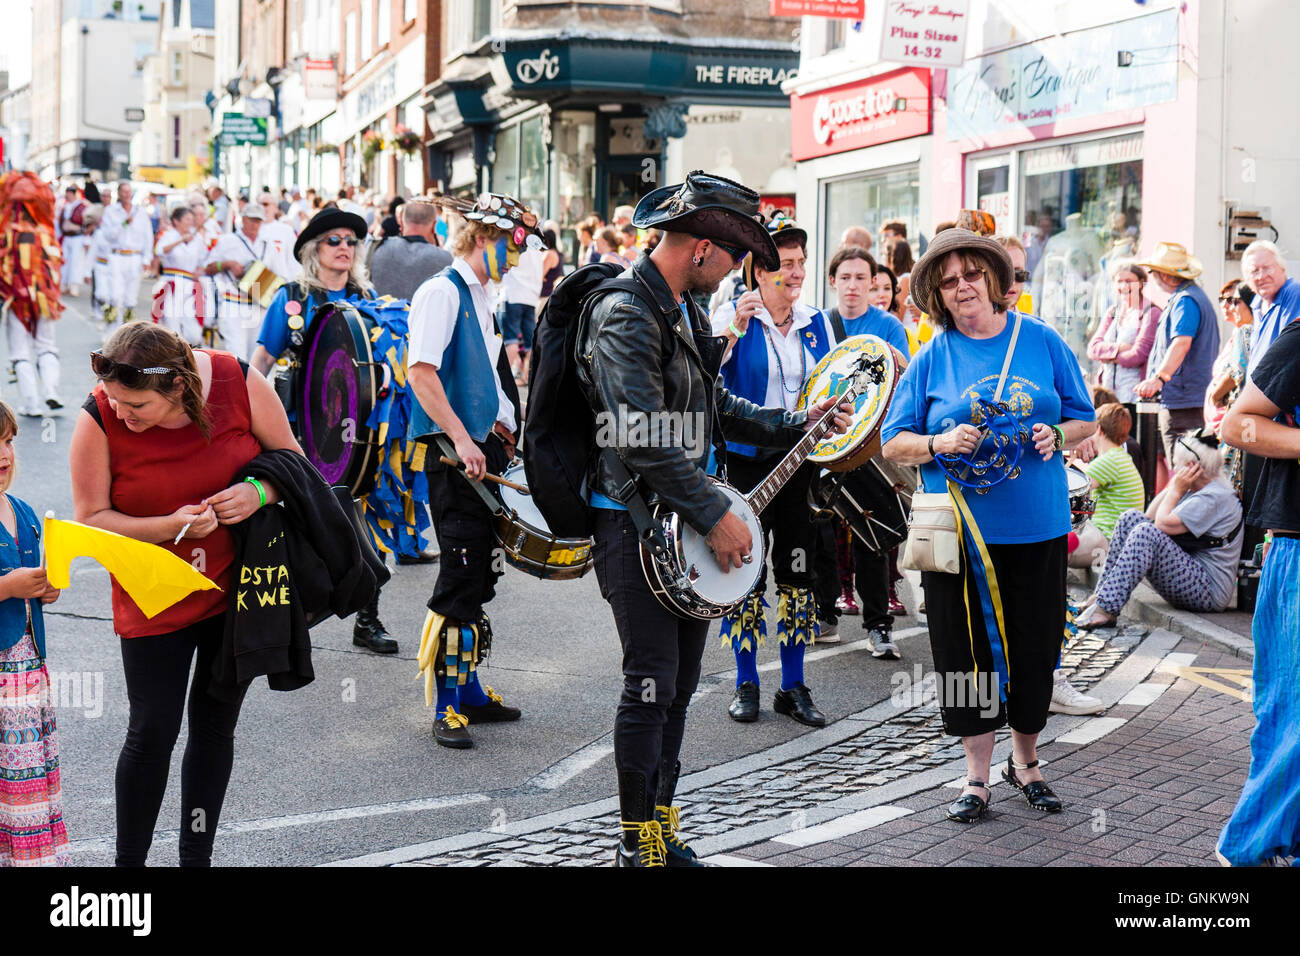 Broadstairs Folk Week. Parade. Royal Liberty Morris group, dancing in a town street, with their banjo player dressed - Stock Image